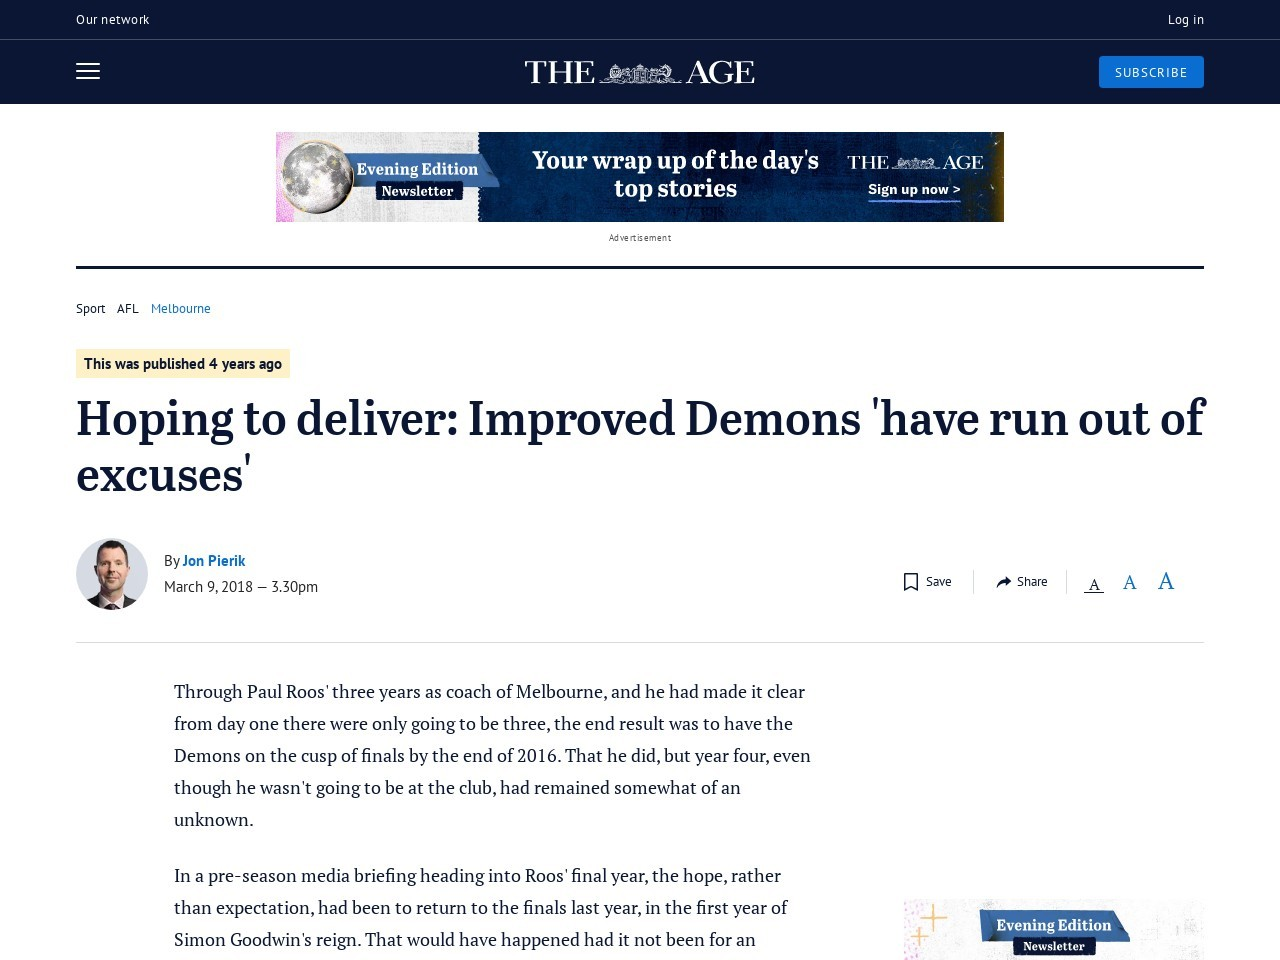 Hoping to ship: Improved Demons 'have run out of excuses'